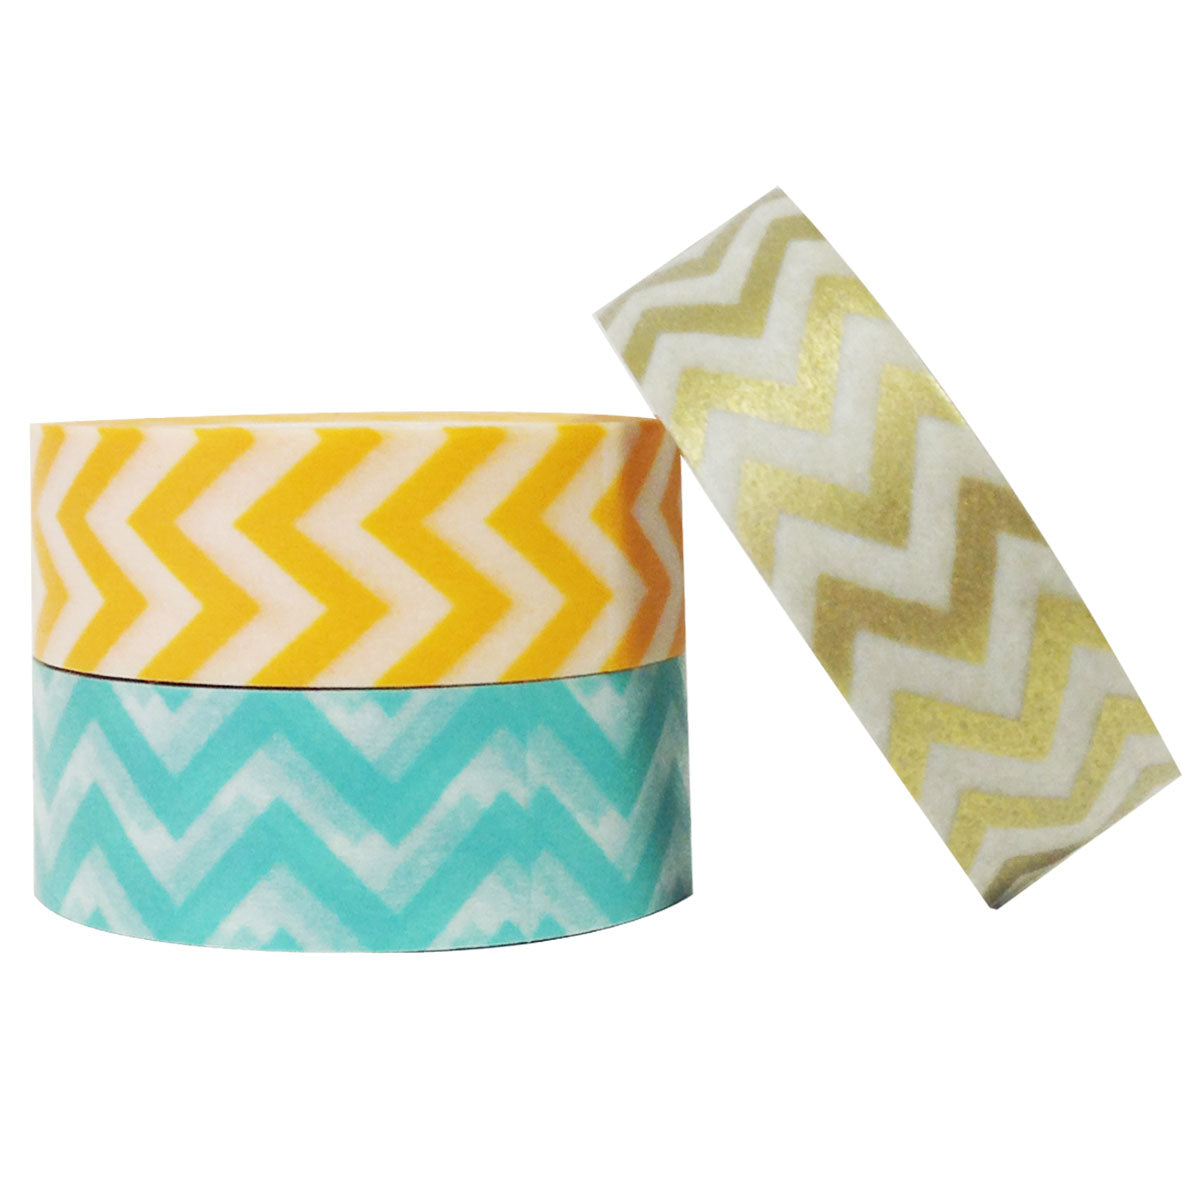 Wrapables Carefree Japanese Washi Masking Tape (set of 3)